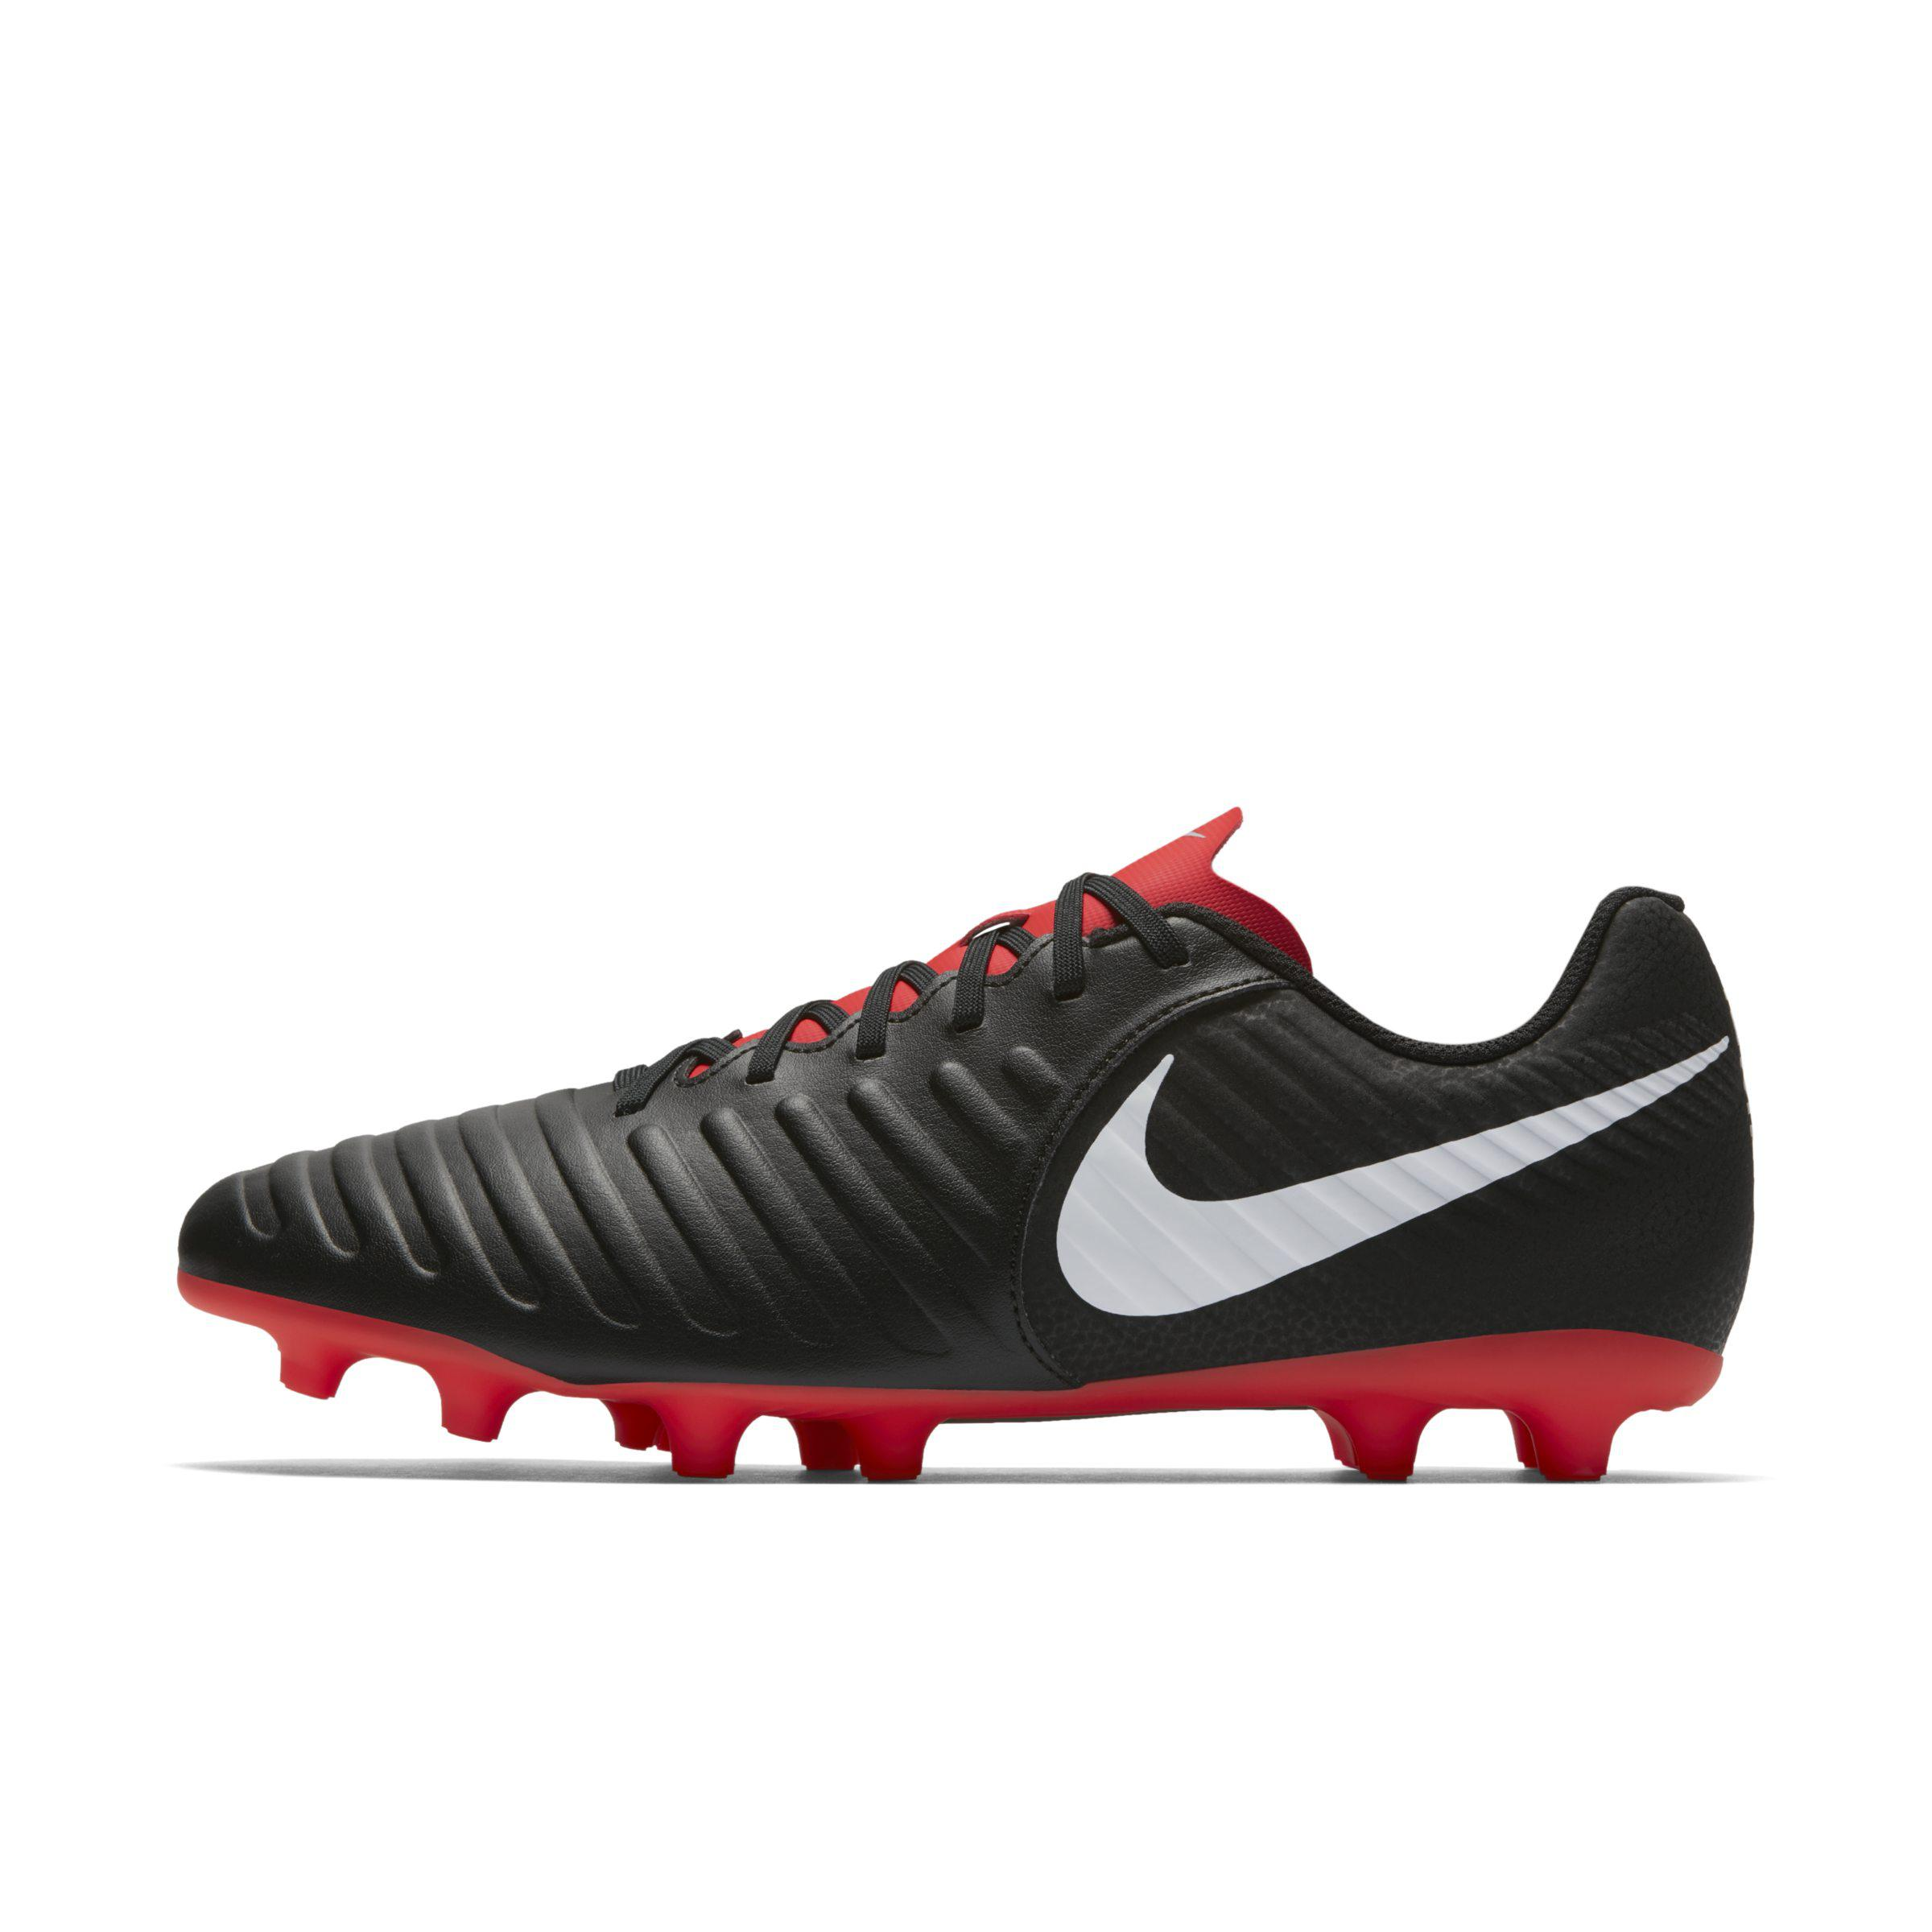 72403c12bf29 Nike Tiempo Legend Vii Club Multi-ground Football Boot in Black - Lyst